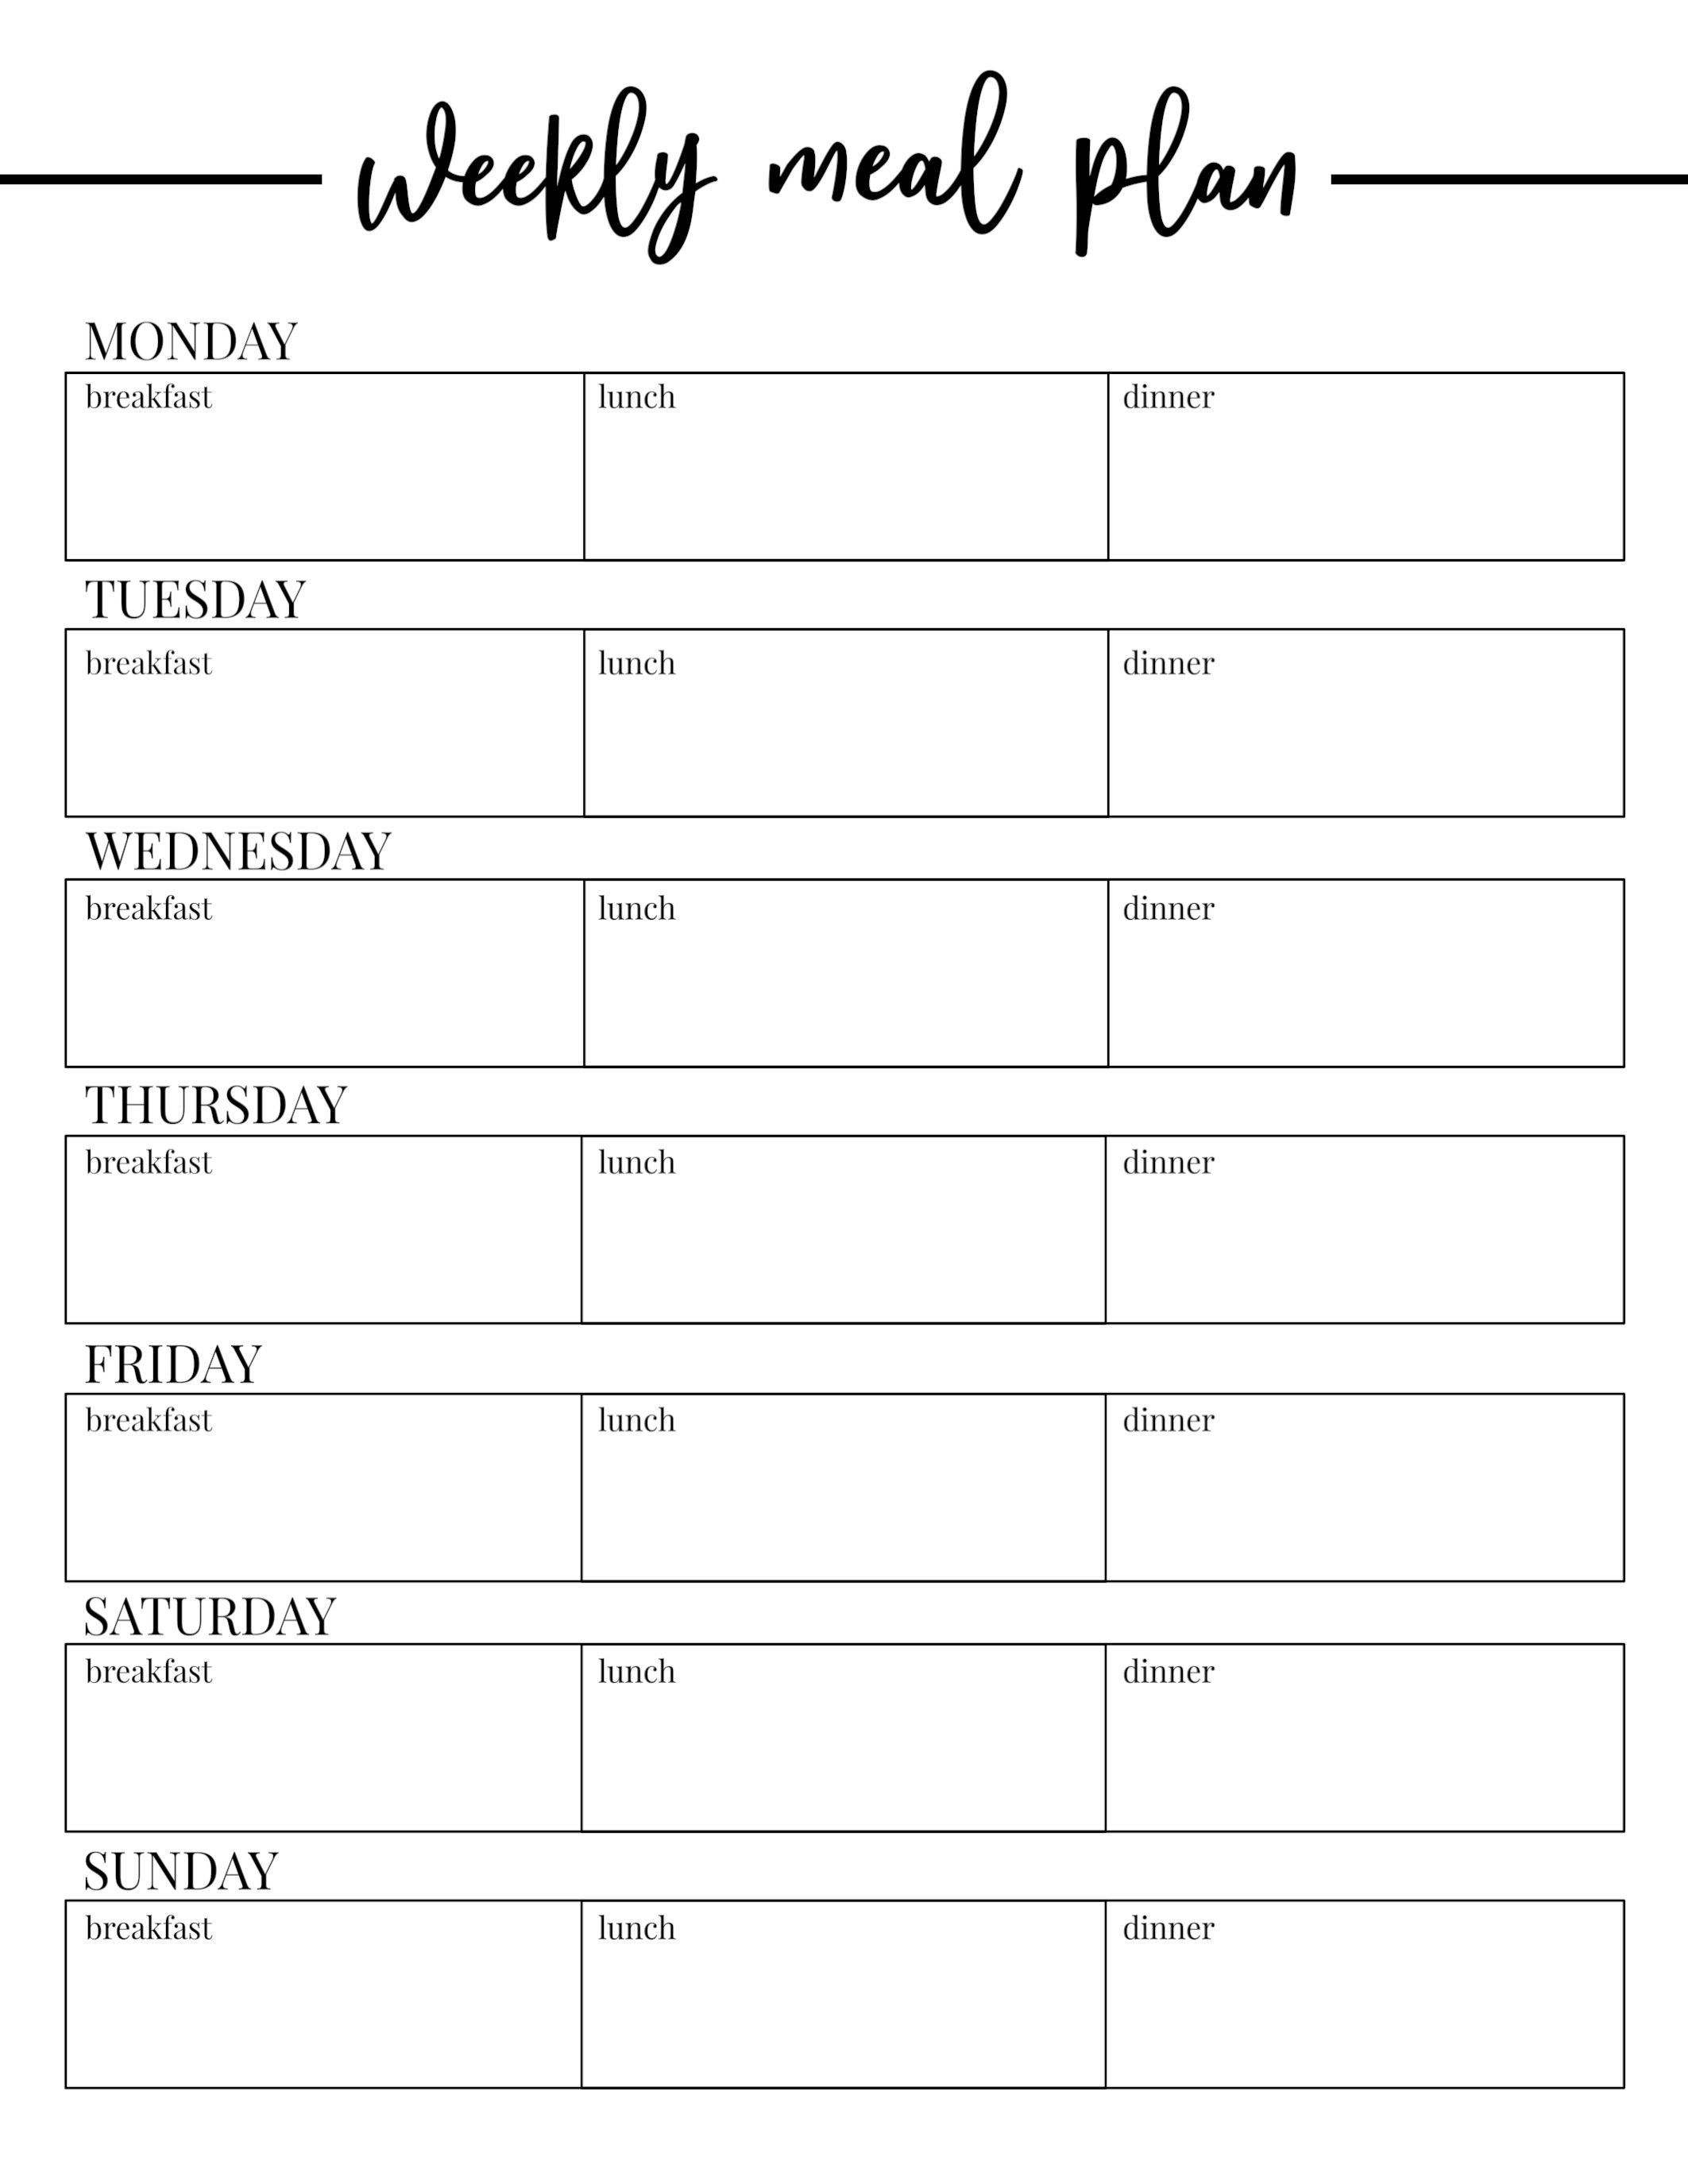 000 Staggering Weekly Eating Plan Template High Resolution  Food Planner Excel Meal DownloadFull